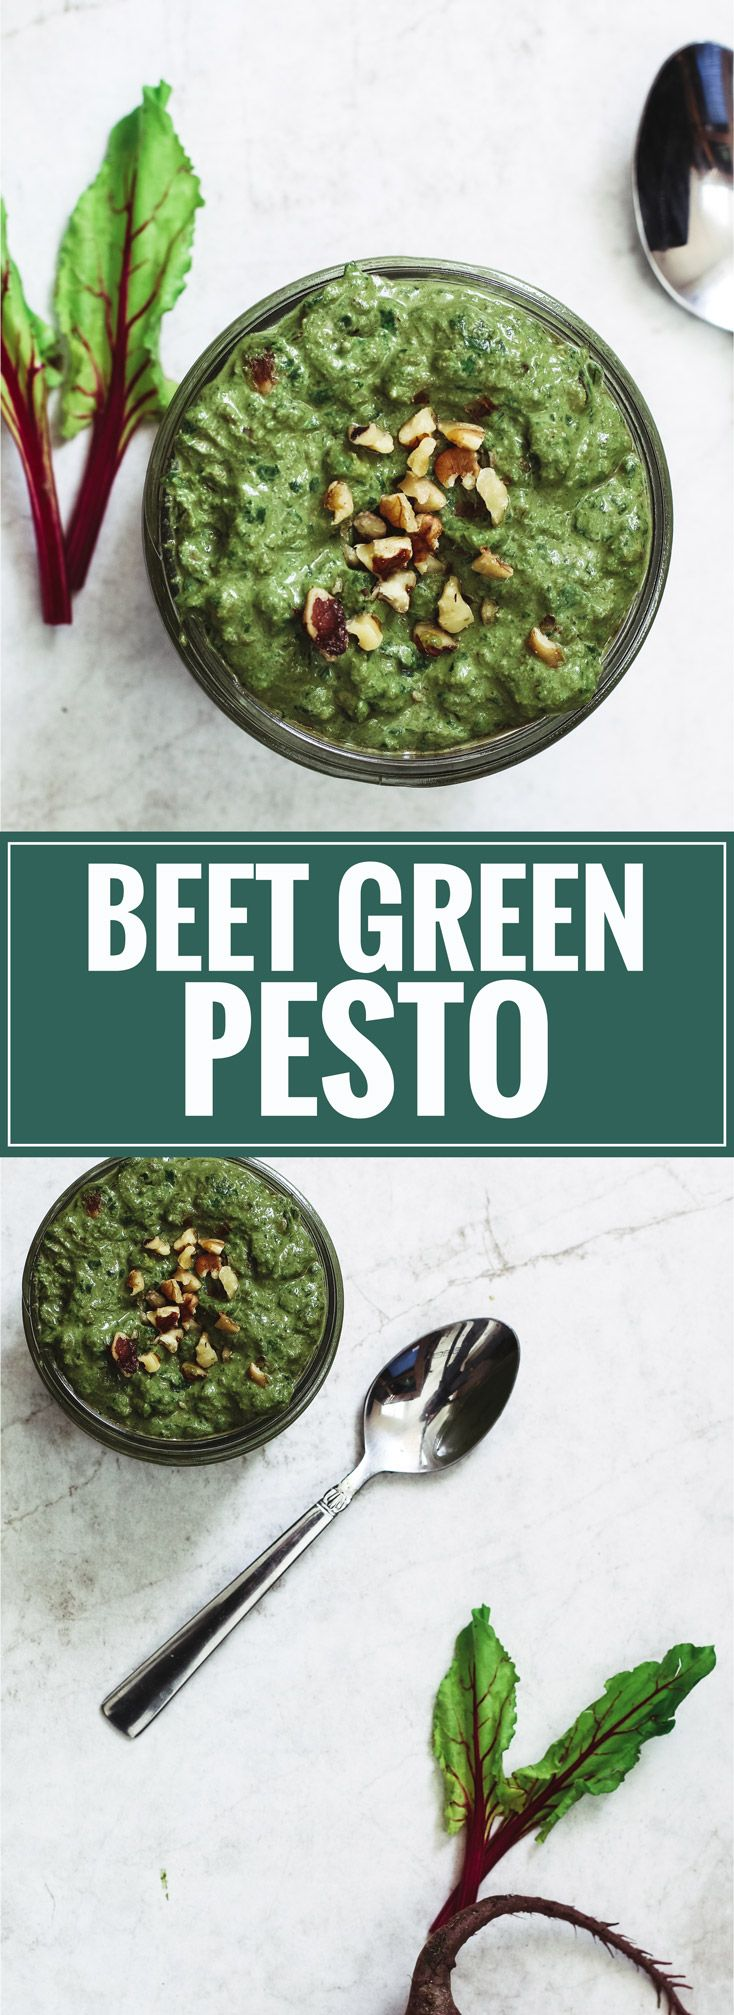 Beet Green Pesto | Killing Thyme Stop tossing your beet greens into the trash! Make this garlicky and nutty pesto instead.